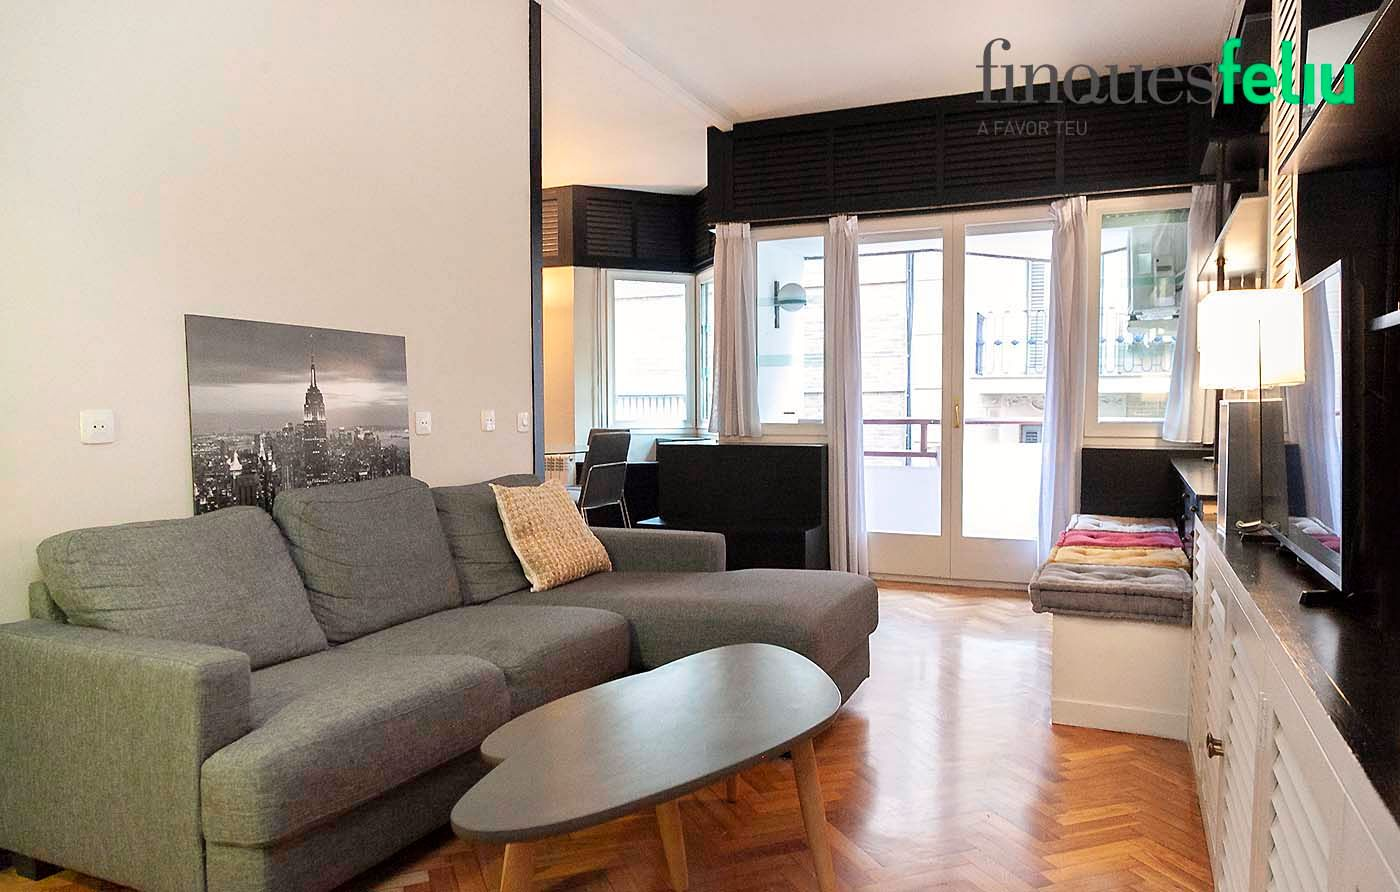 Miete Appartement in Carrer regas, 7